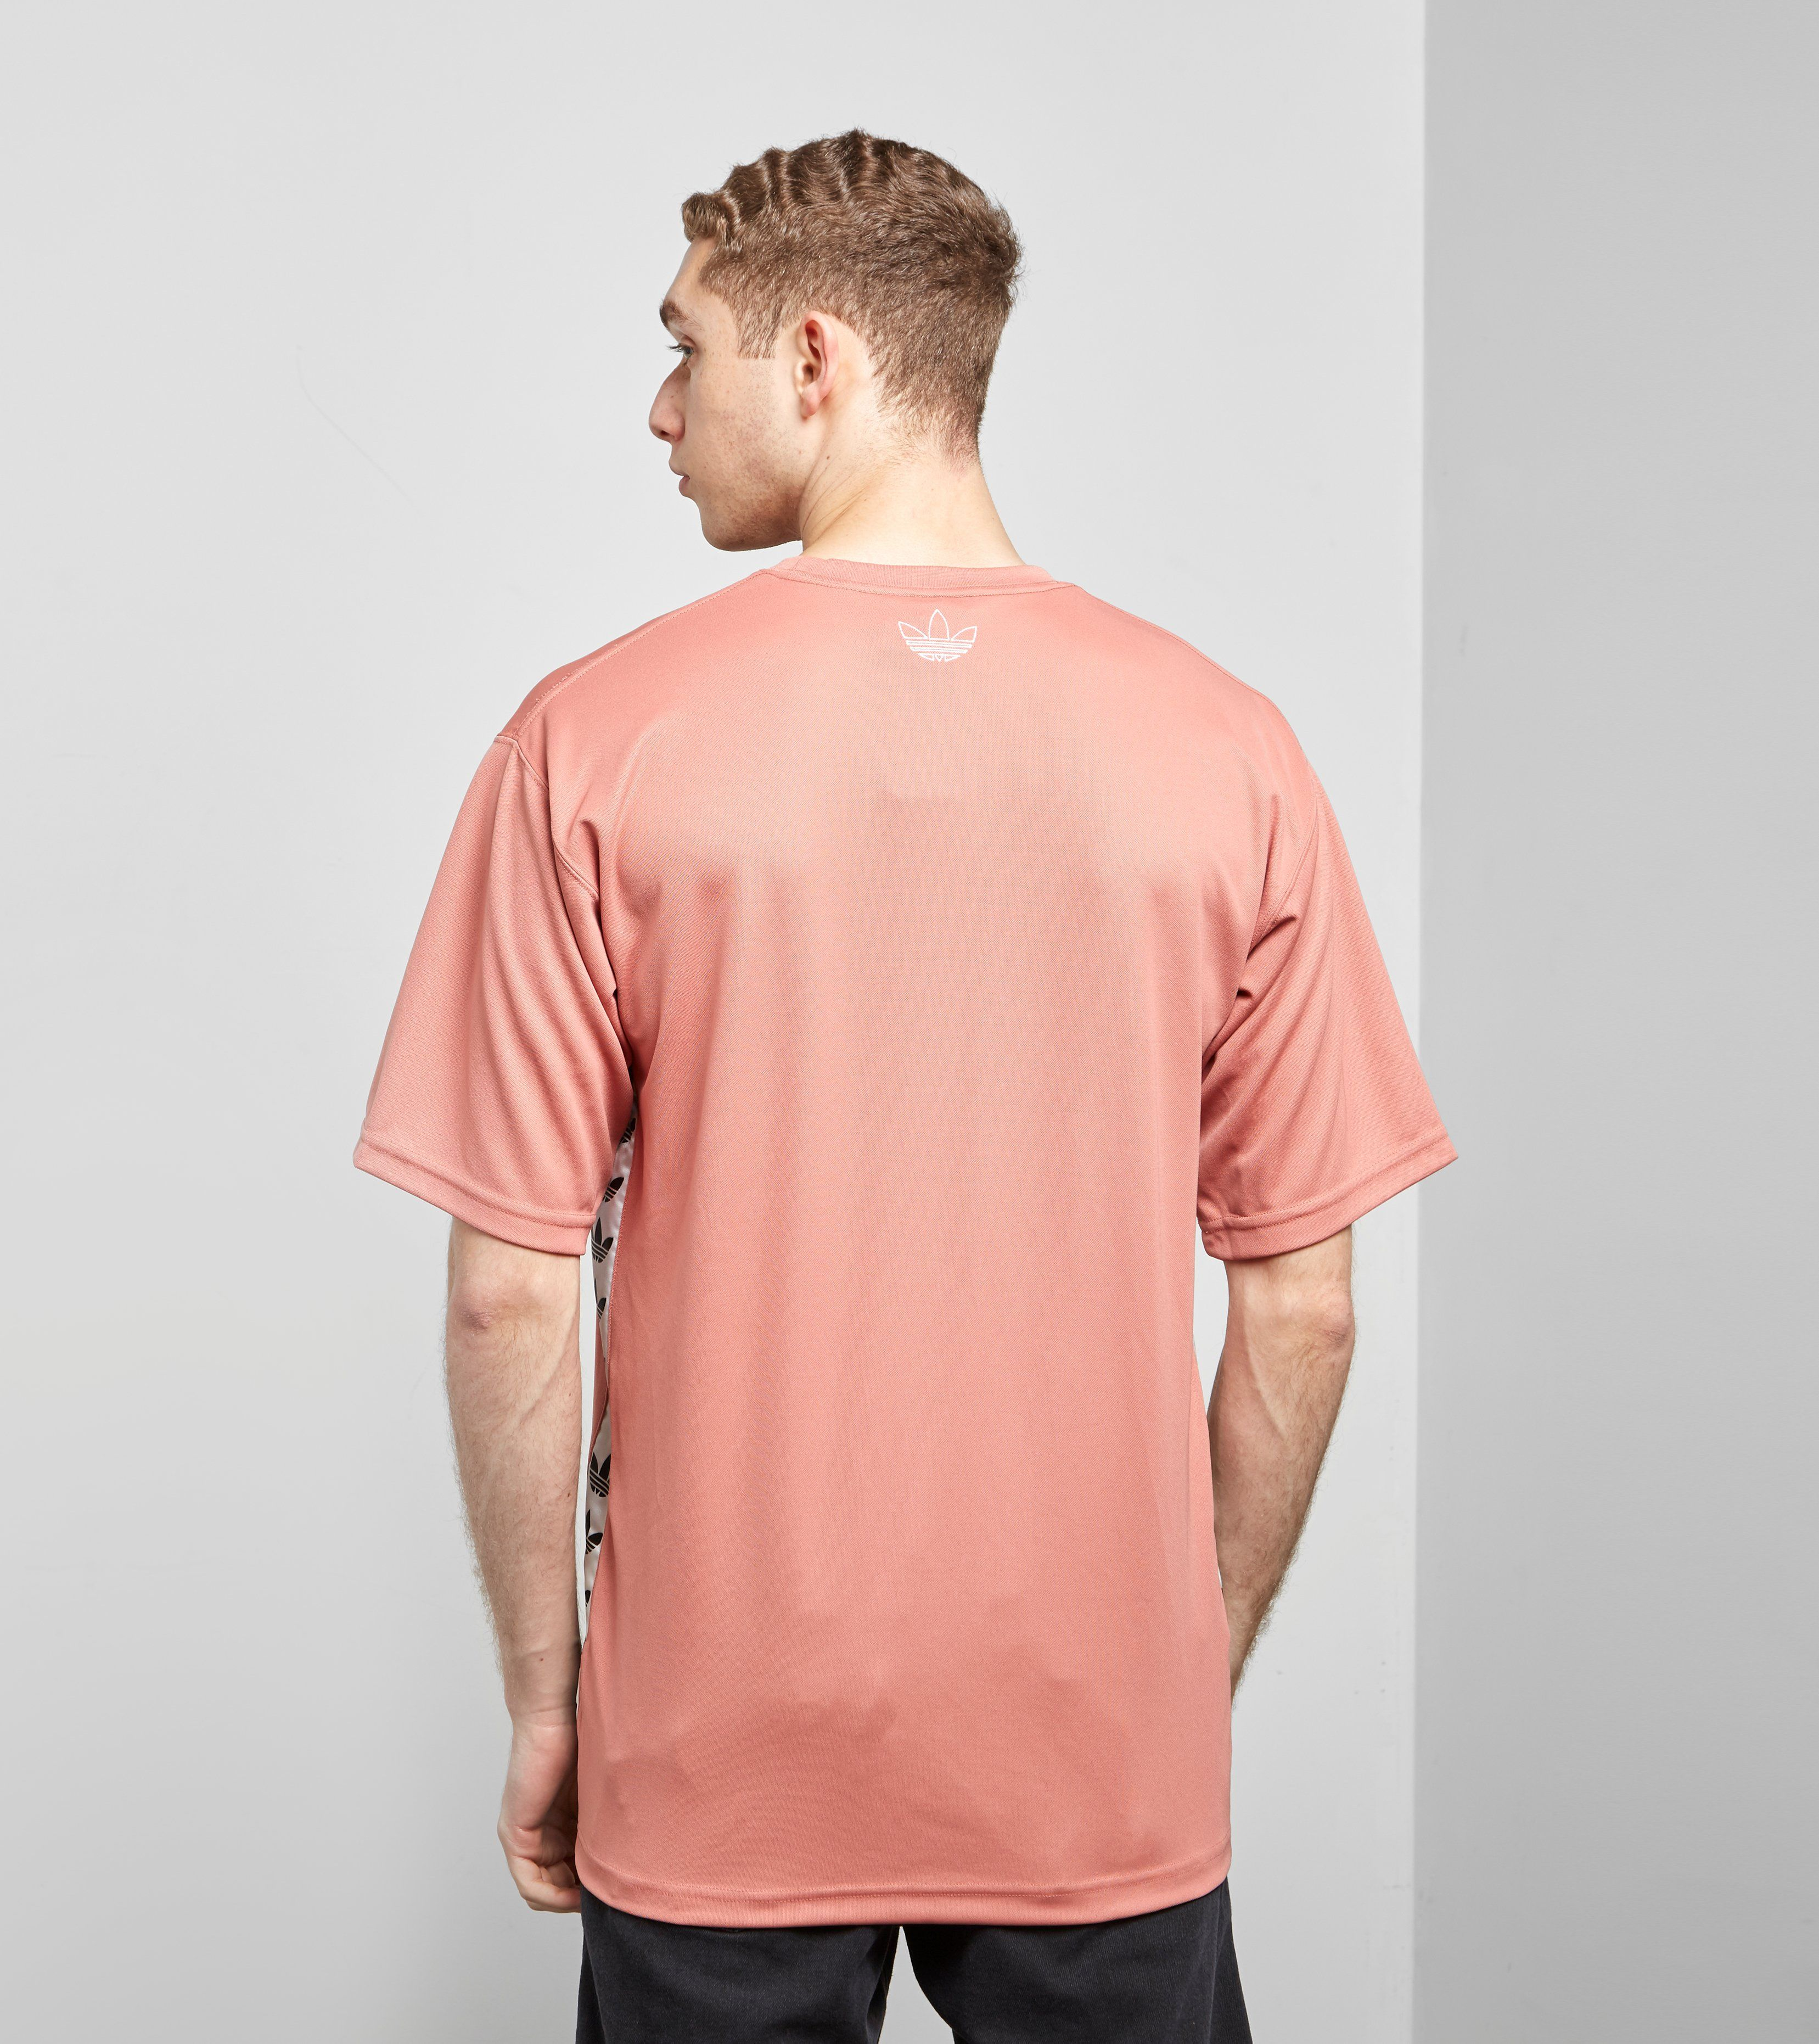 adidas Originals Tape T-Shirt - size? Exclusive